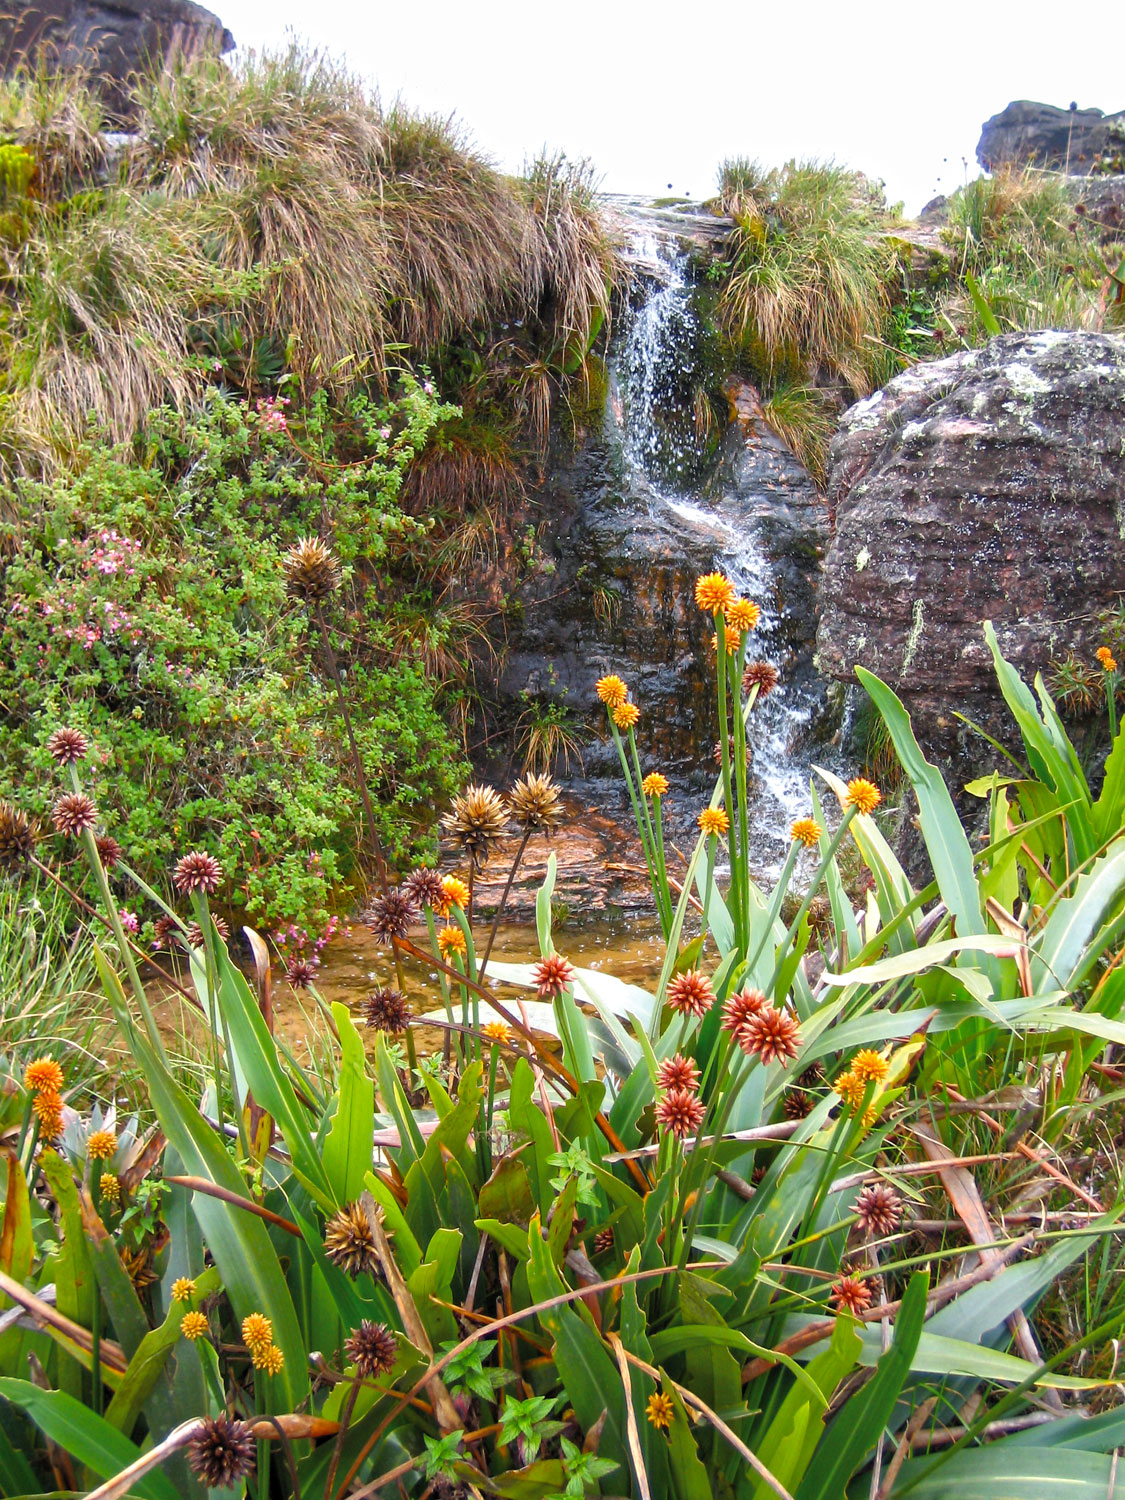 This little waterfall and pool served as our 'shower' at 'Hotel Basilio'. Photograph by Nicholas Laughlin